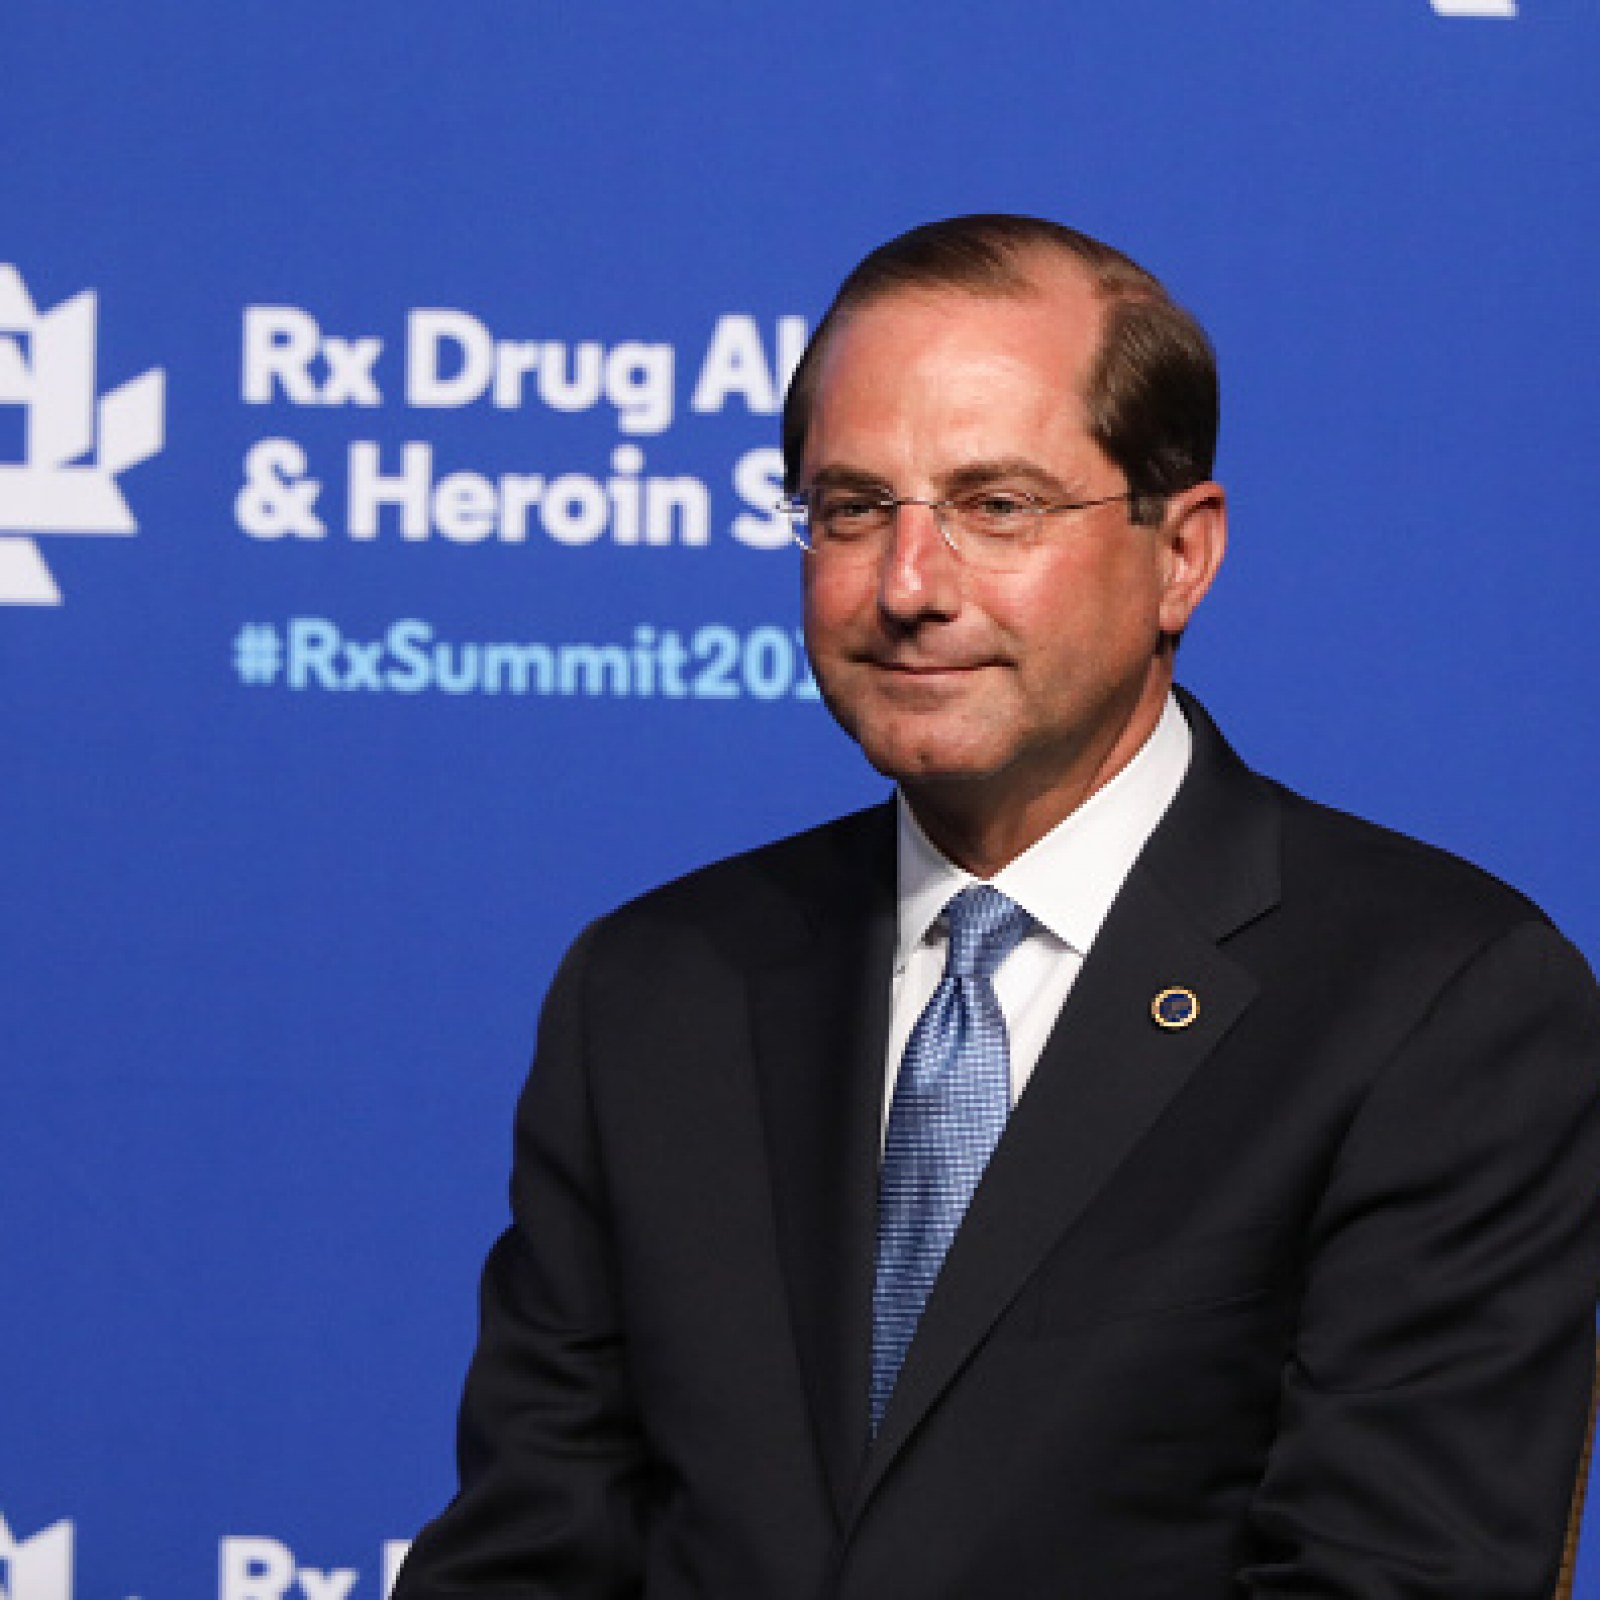 Hhs Secretary Alex Azar Once Doubled The Price Of Insulin Now He Wants The Trump Administration To Import Cheaper Drugs From Canada